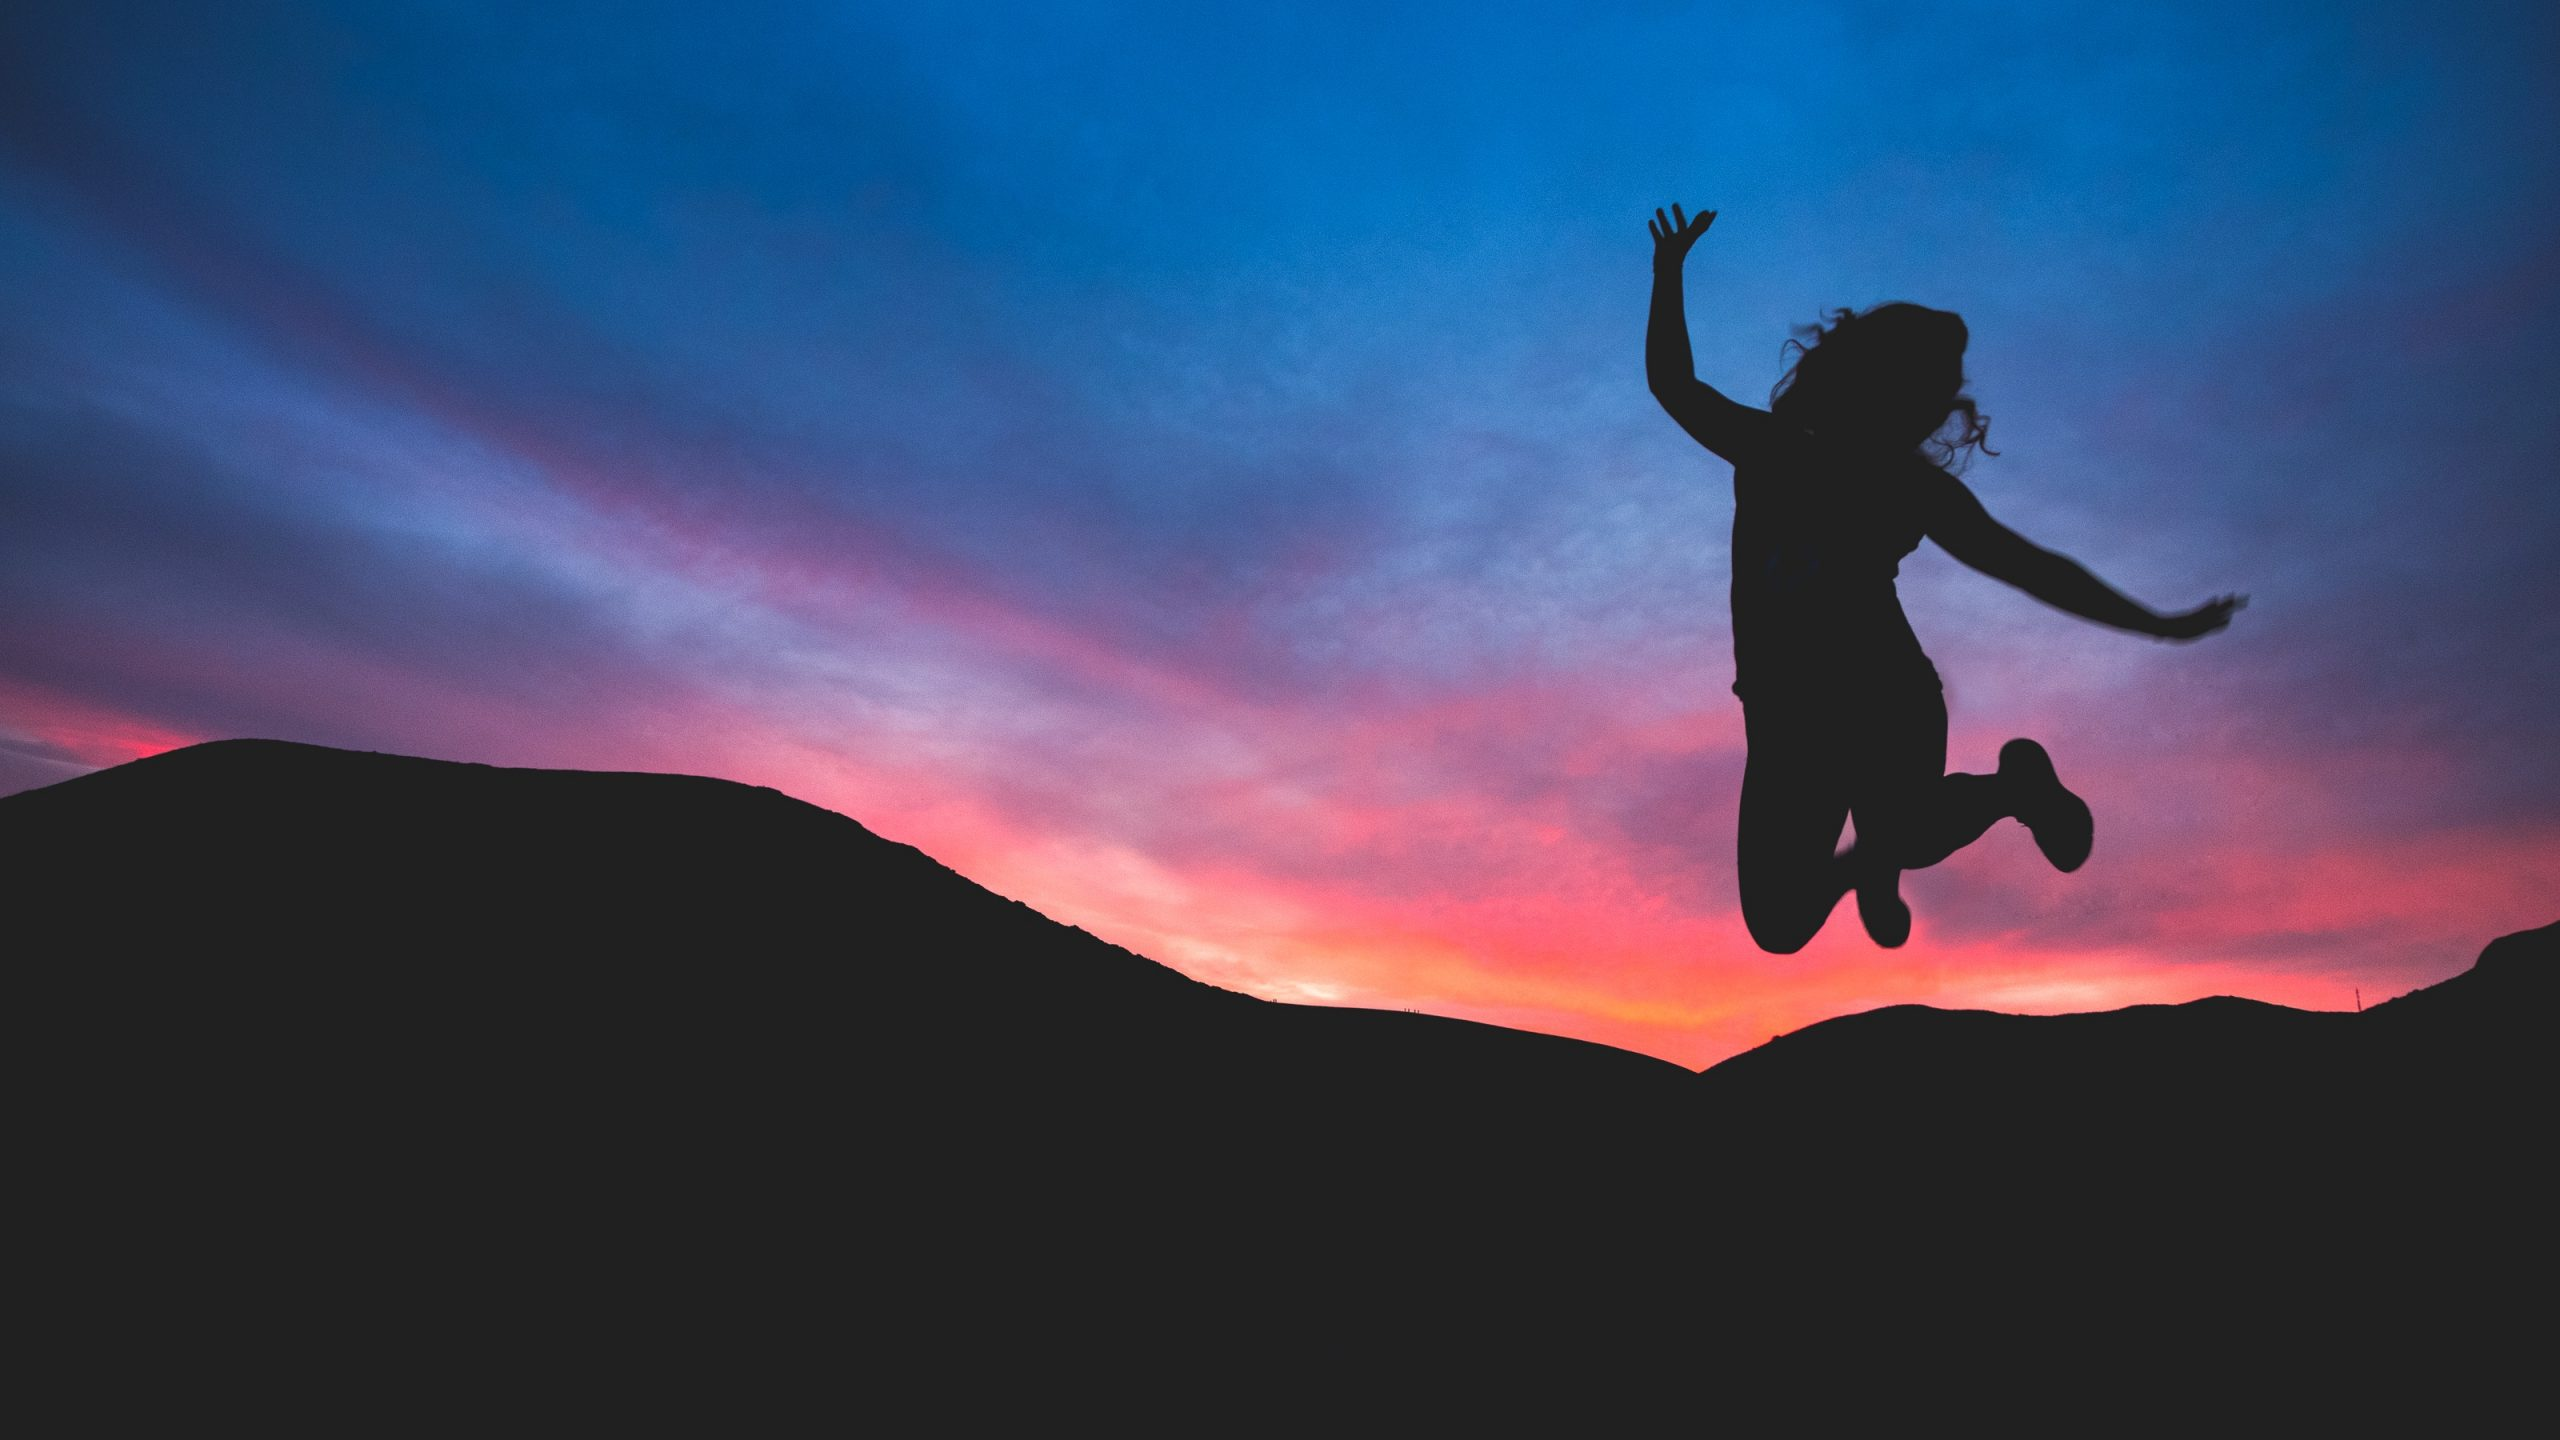 Time to Take a Leap With This New Moon in April